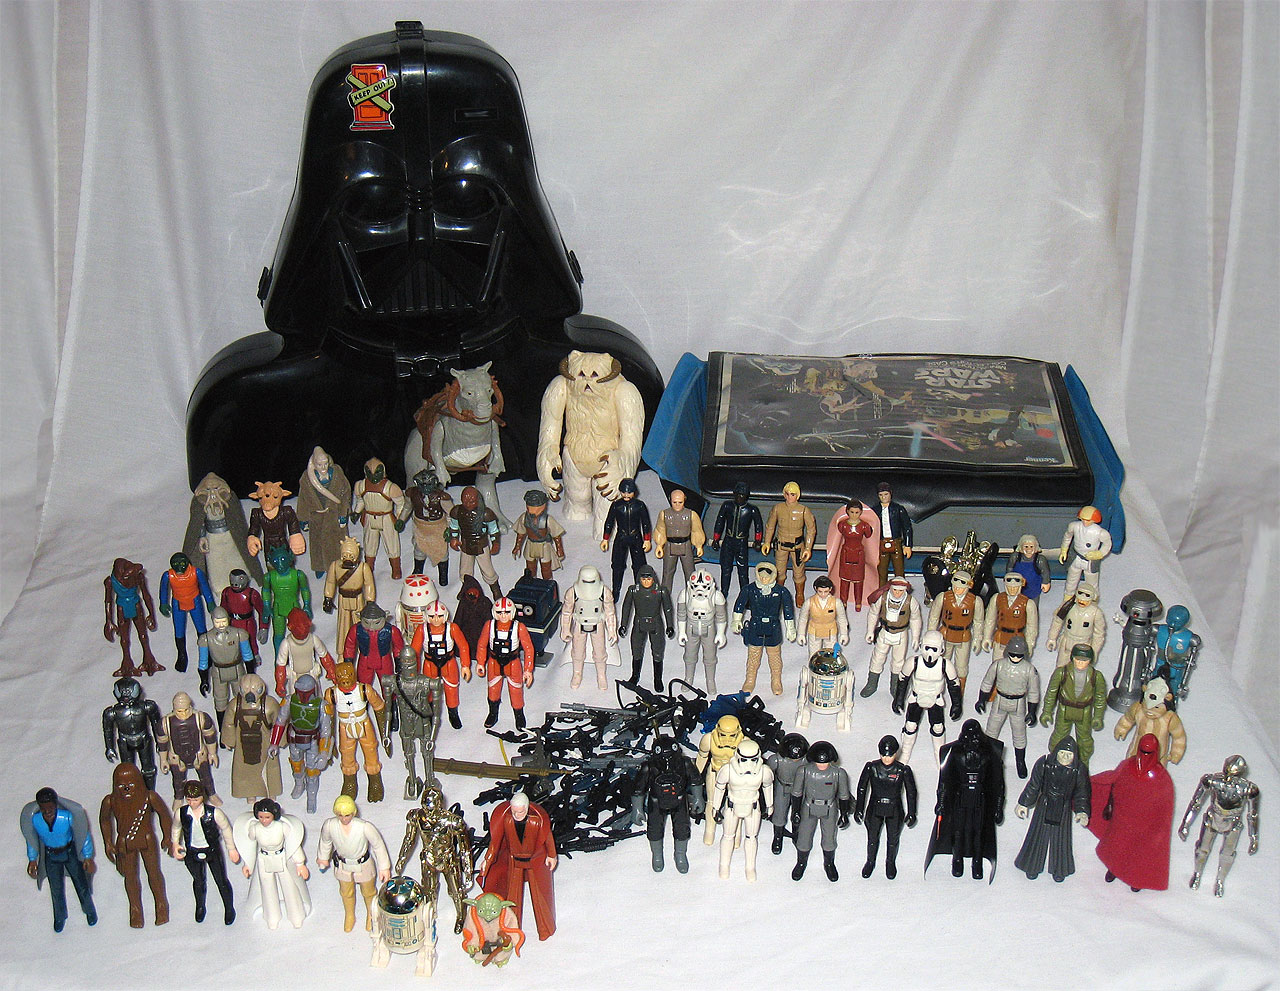 Star Wars Vintage Toys : Star wars fire water firestorm fan